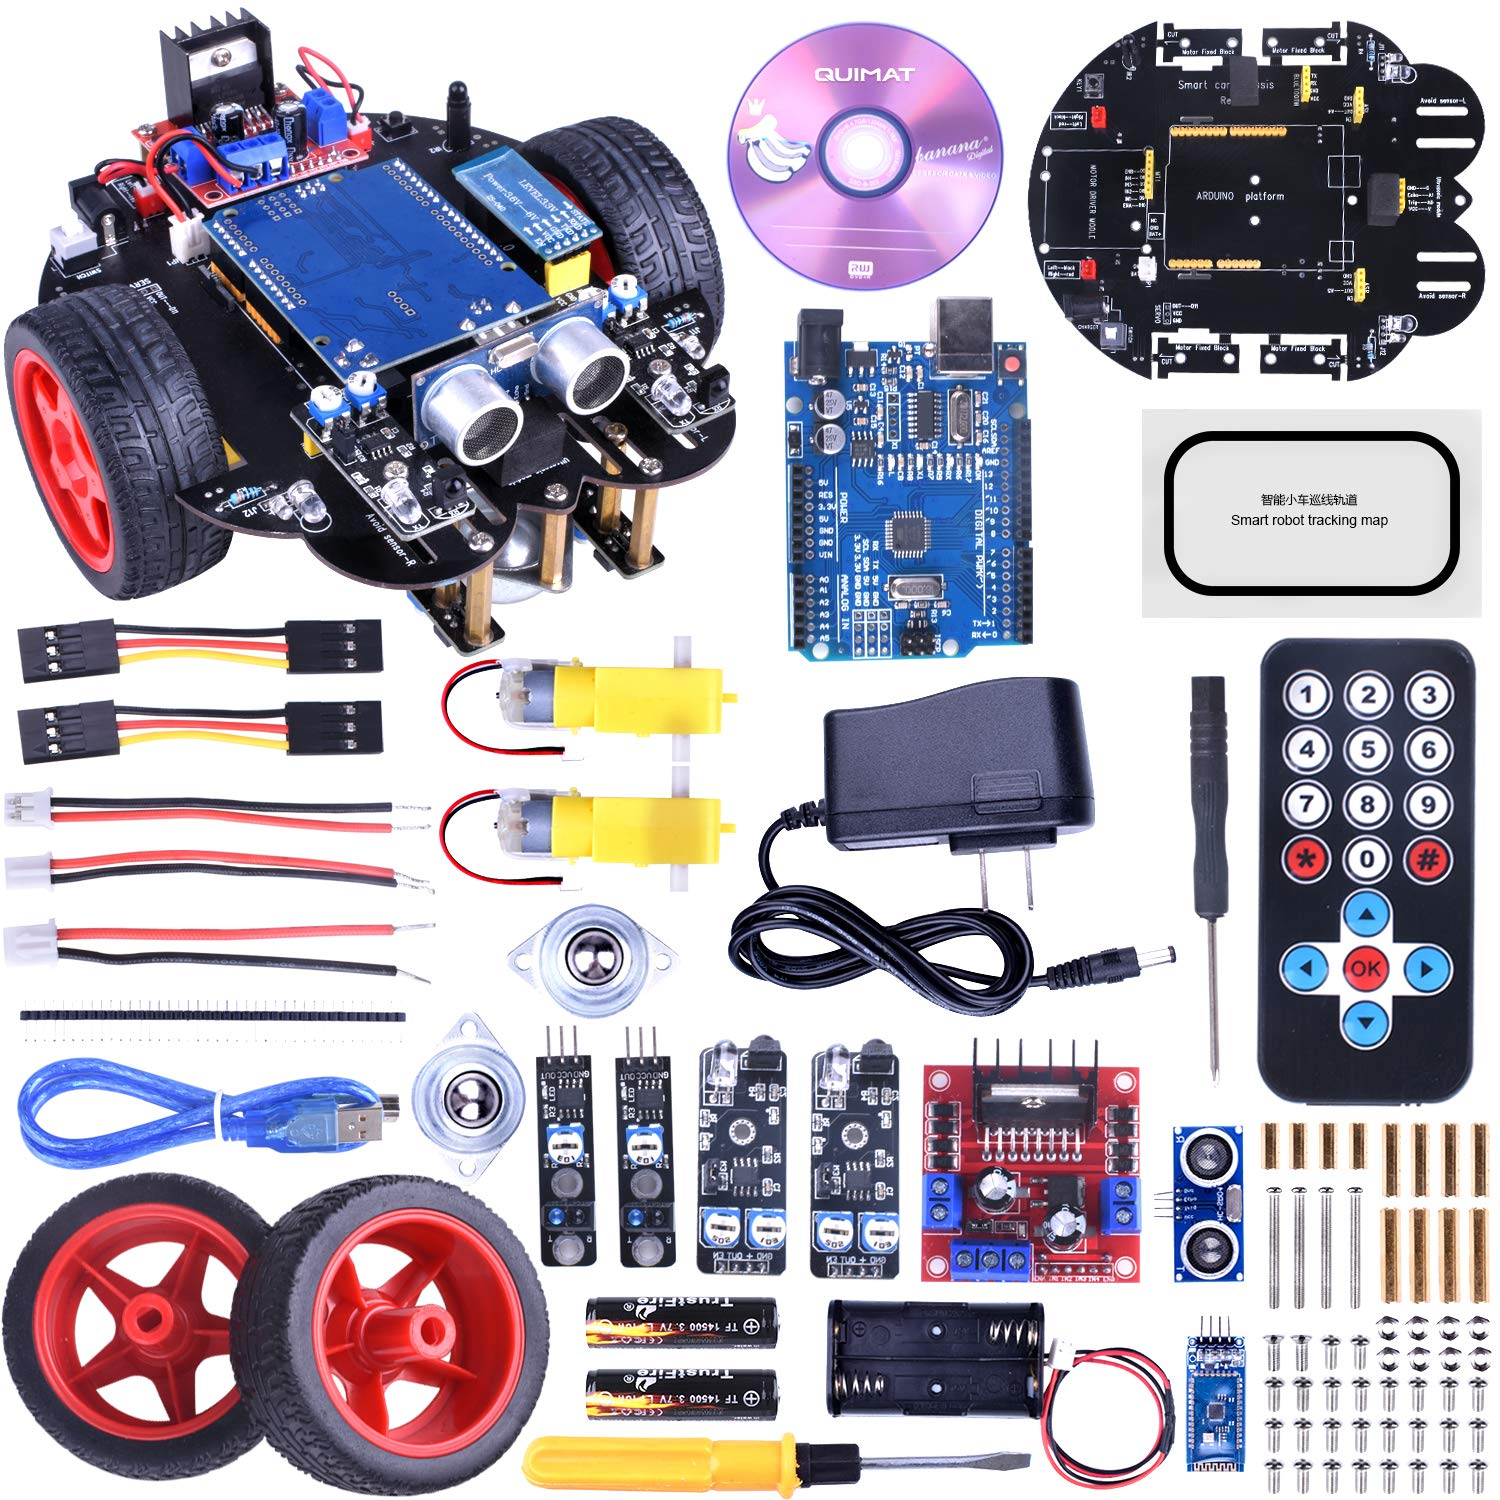 Quimat Smart Robot Car Kit with Two-Wheel Drives,UNOR3 Board,Tracking Module,Ultrasonic Sensor and Bluetooth Remote Control, Intelligent and Educational Car for Teens and Adults (Red) by Quimat